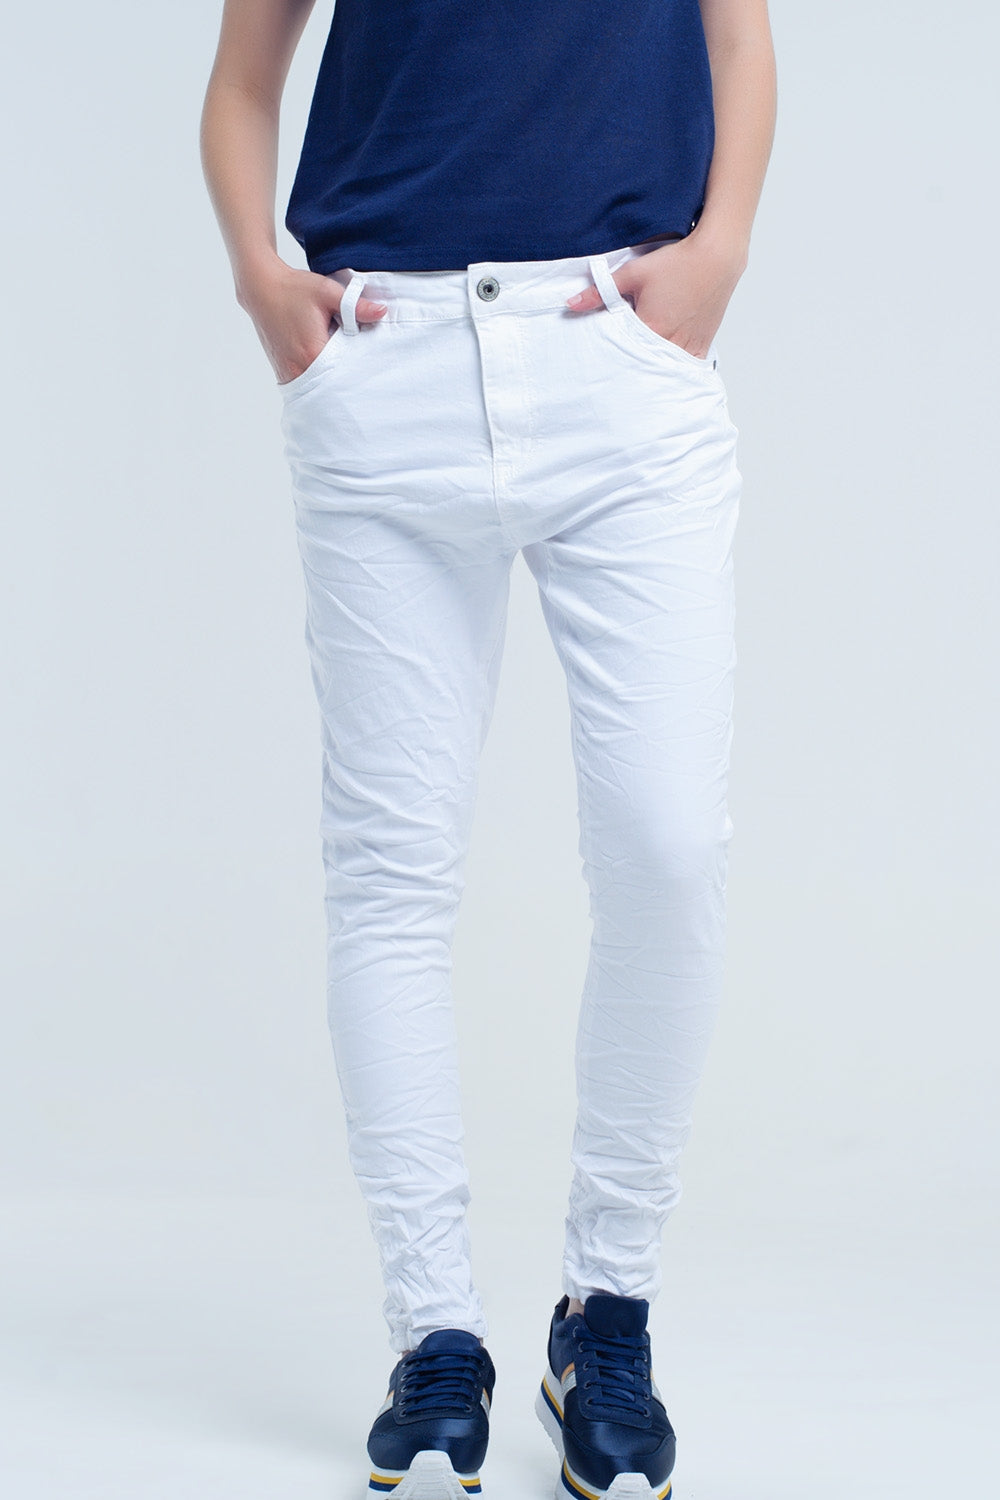 Crumpled white jeans with pockets